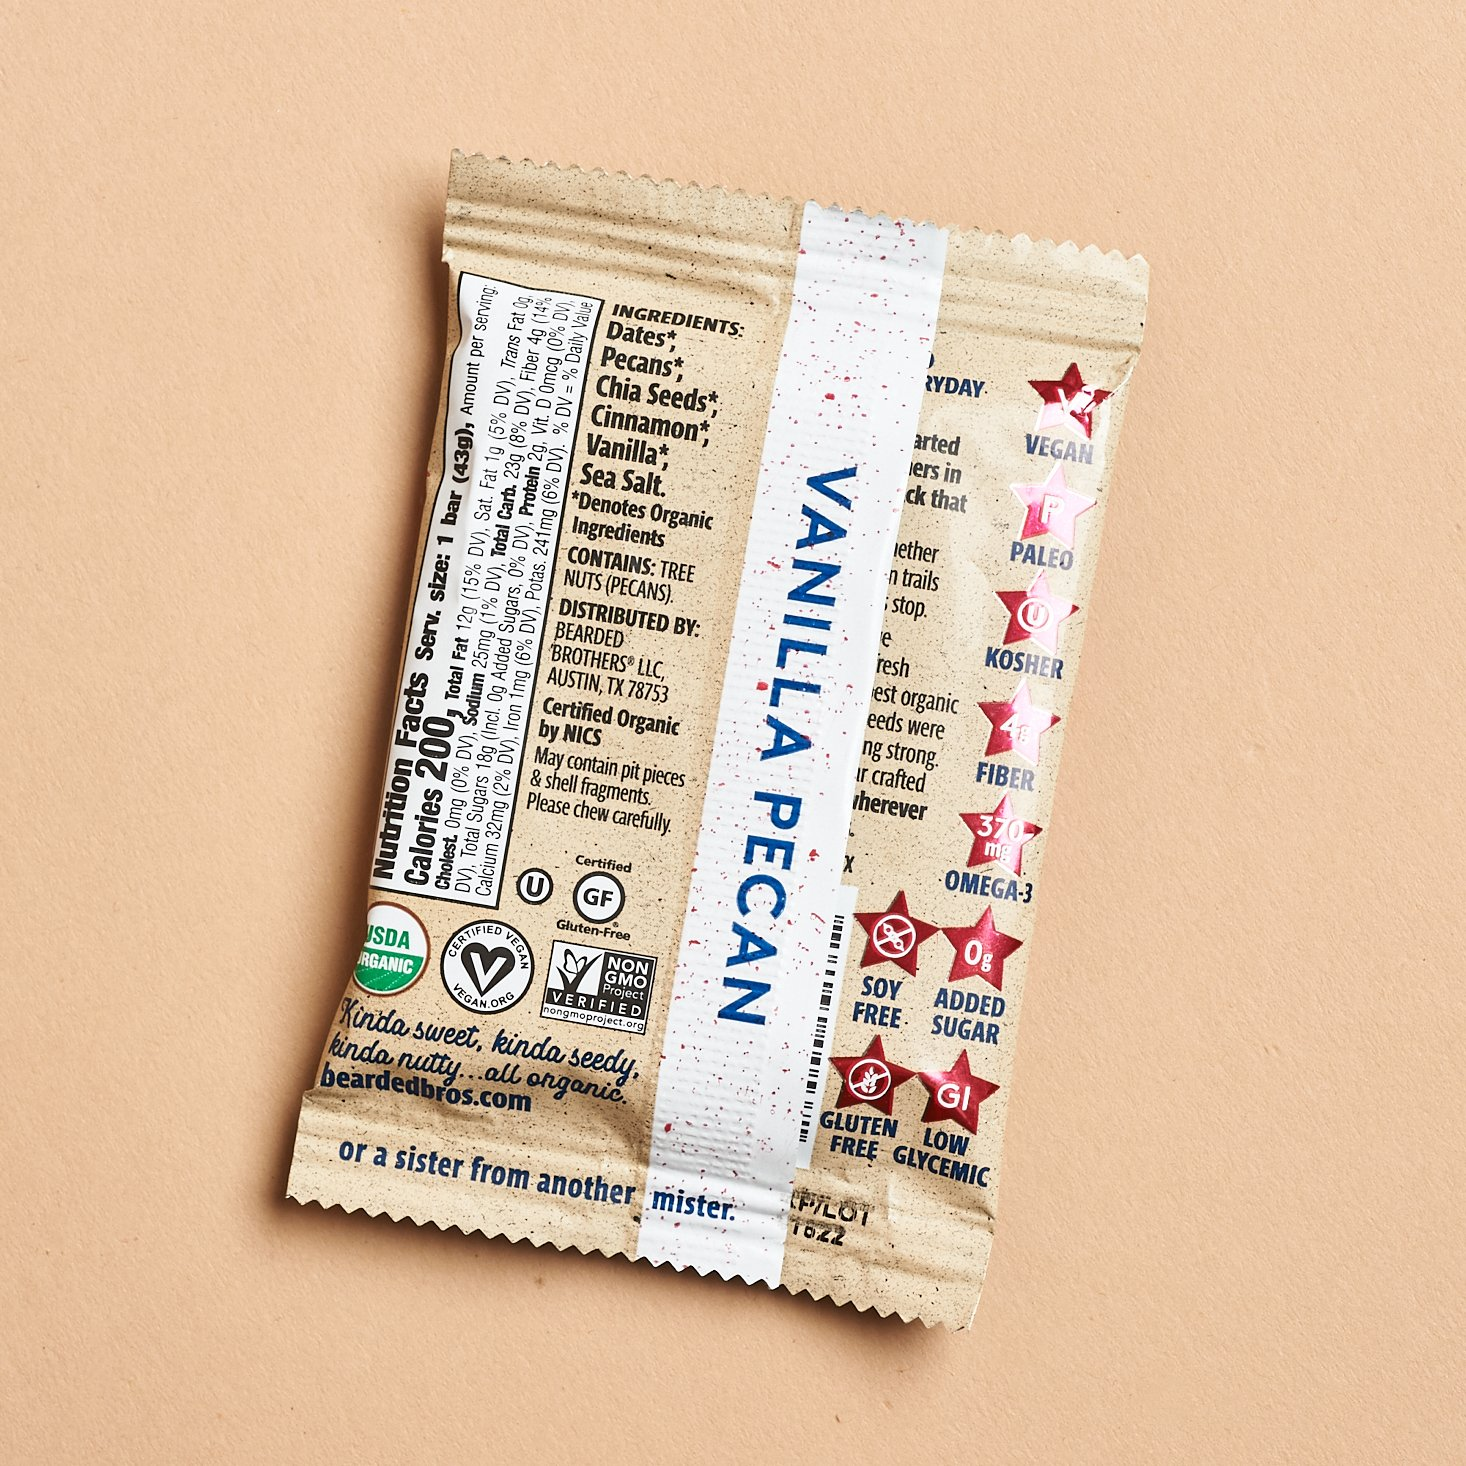 vanilla pecan food bar package showing utrition facts